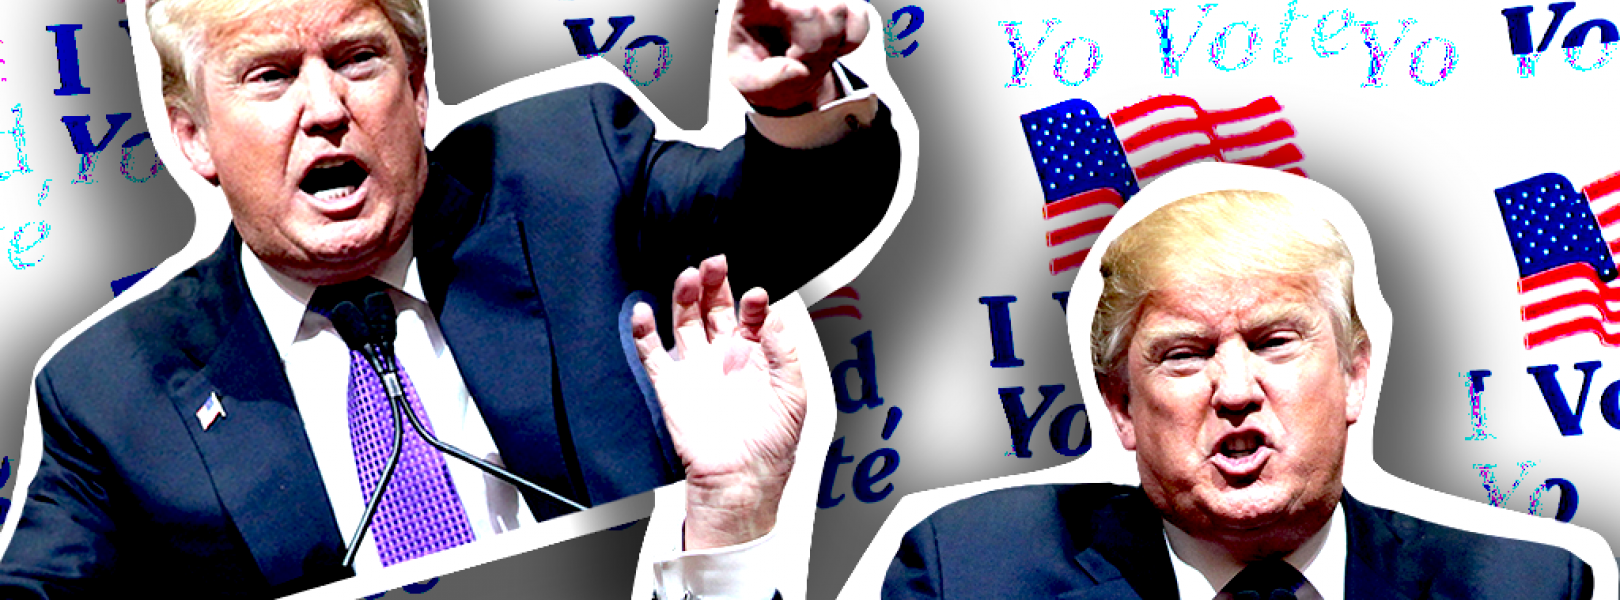 Here are some of the many bogus claims of voter fraud right-wing media have pushed about the 2020 election